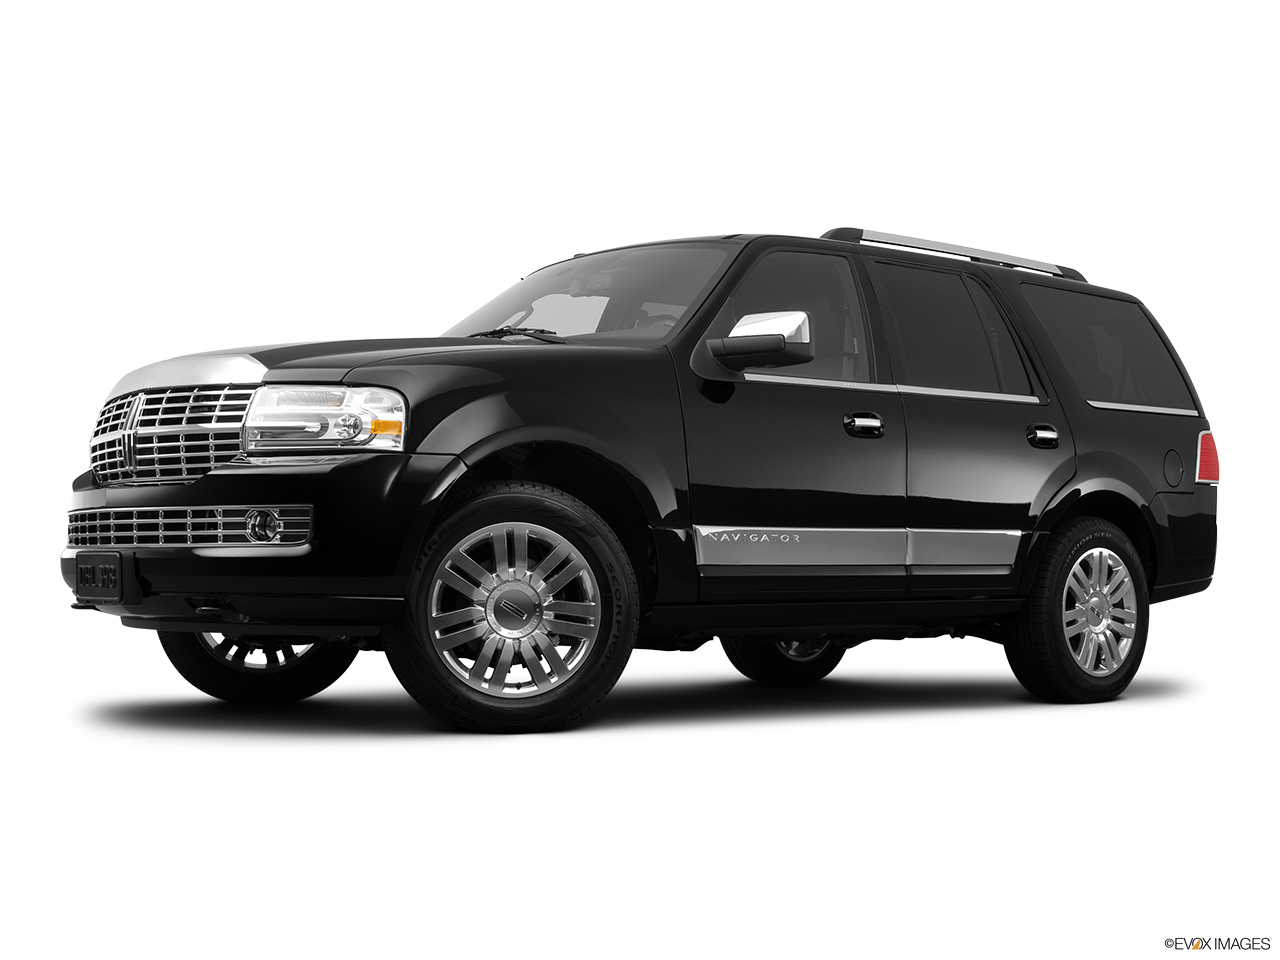 2012 Lincoln Navigator Base Low/wide front 5/8.